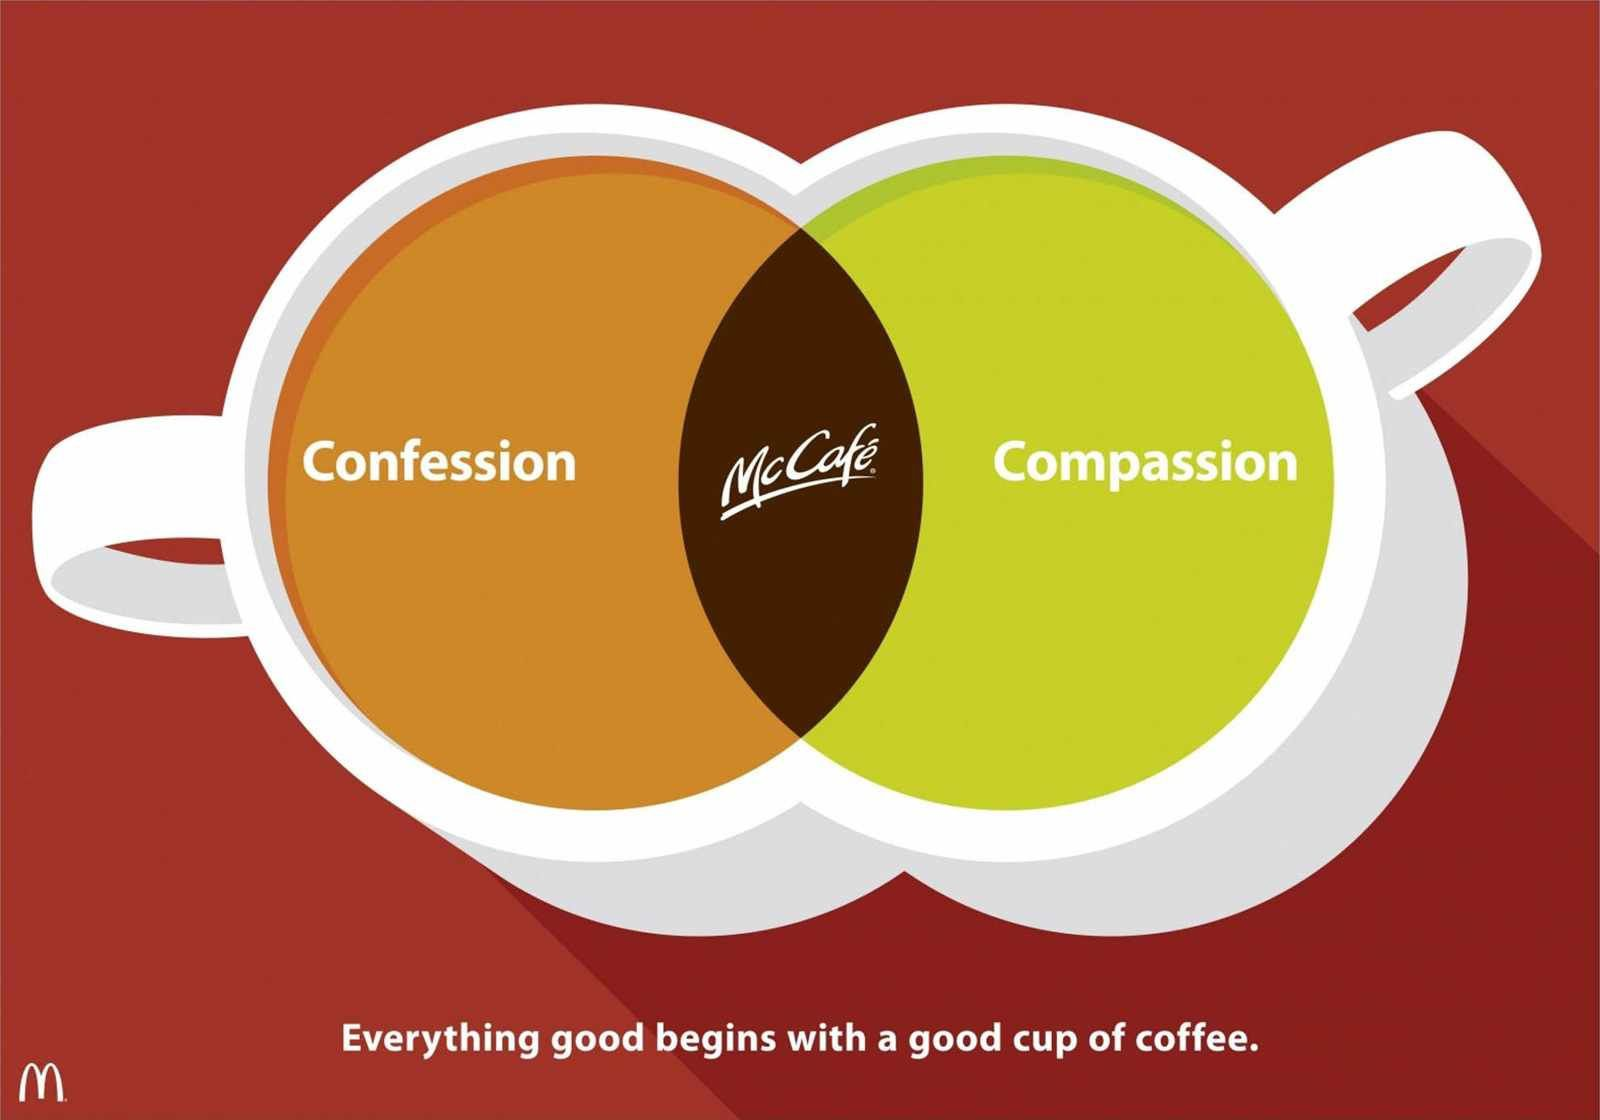 """Everything good begins with a good cup of coffee"" 